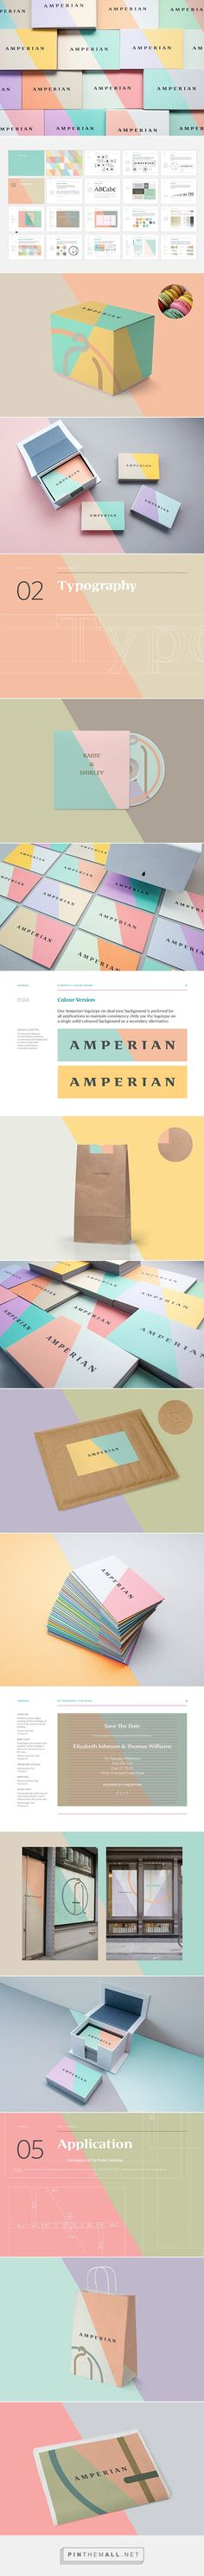 Amperian on Behance by BÜRO UFHO curated by Packaging Diva PD nice logotype and color branding and packaging design created https://www.behance.net/gallery/22869259/Amperian